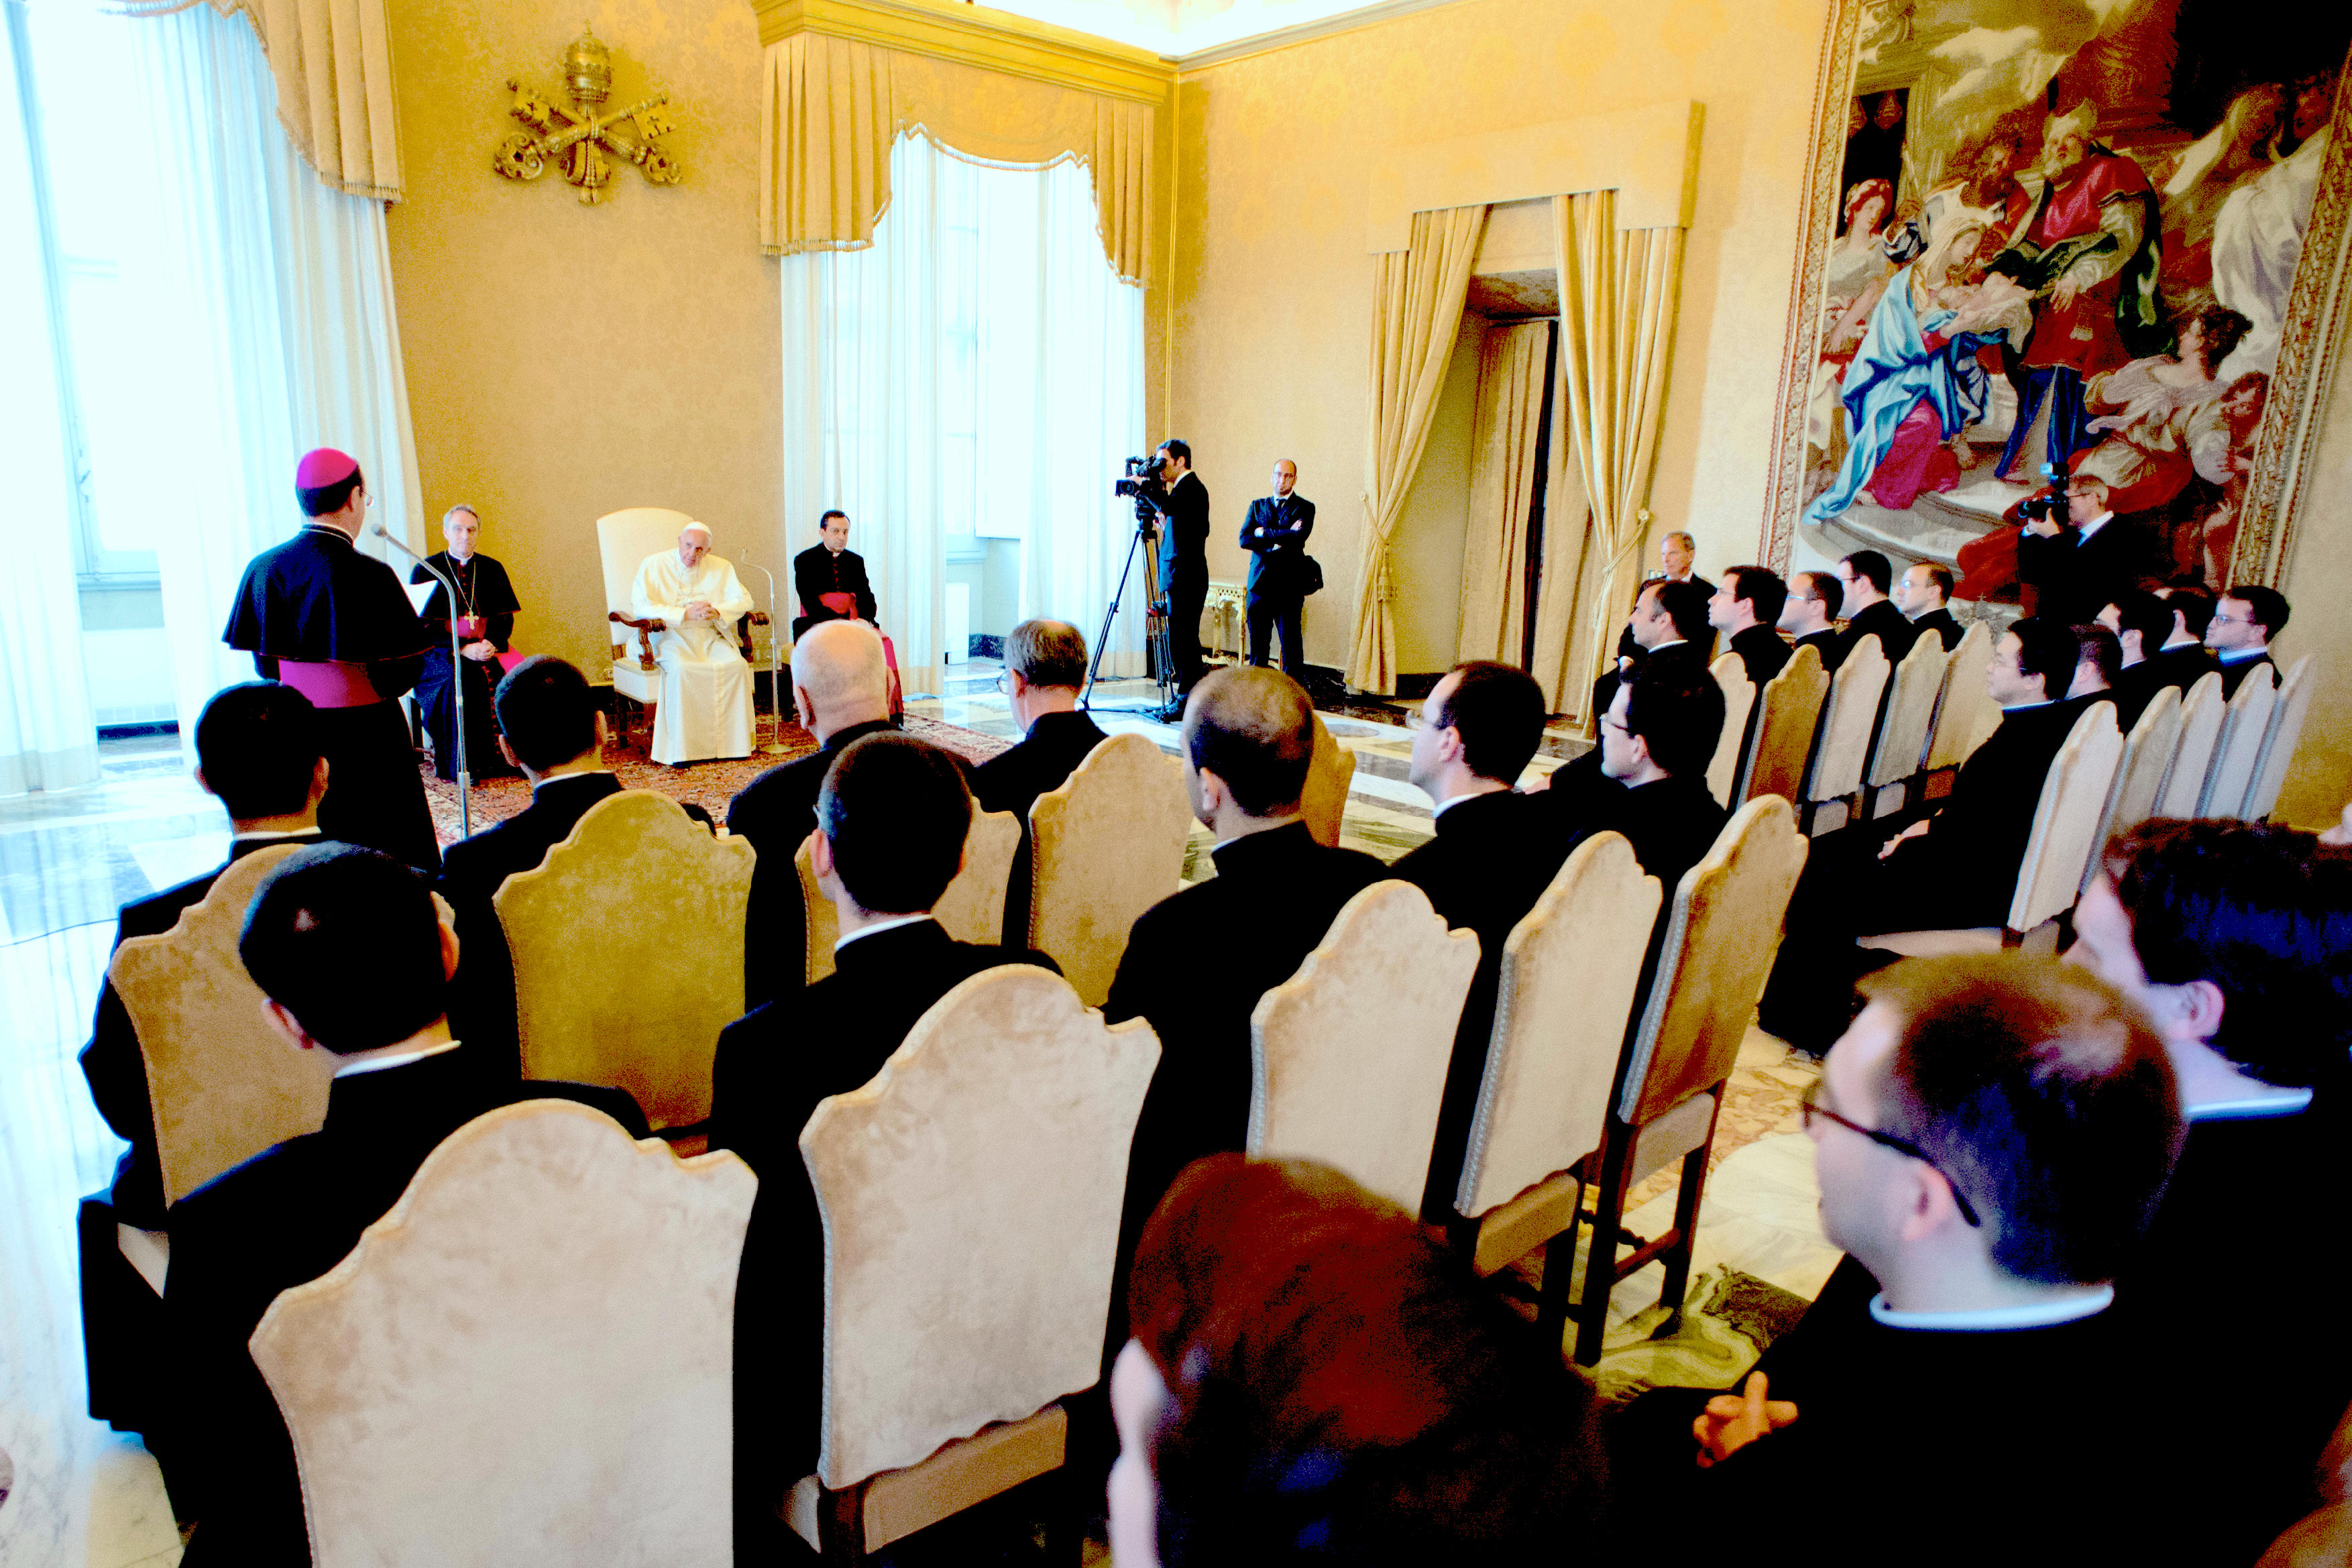 Pope Francis meets at the members of the Pontifical Ecclesiastical Academy in the Apostolic Palace